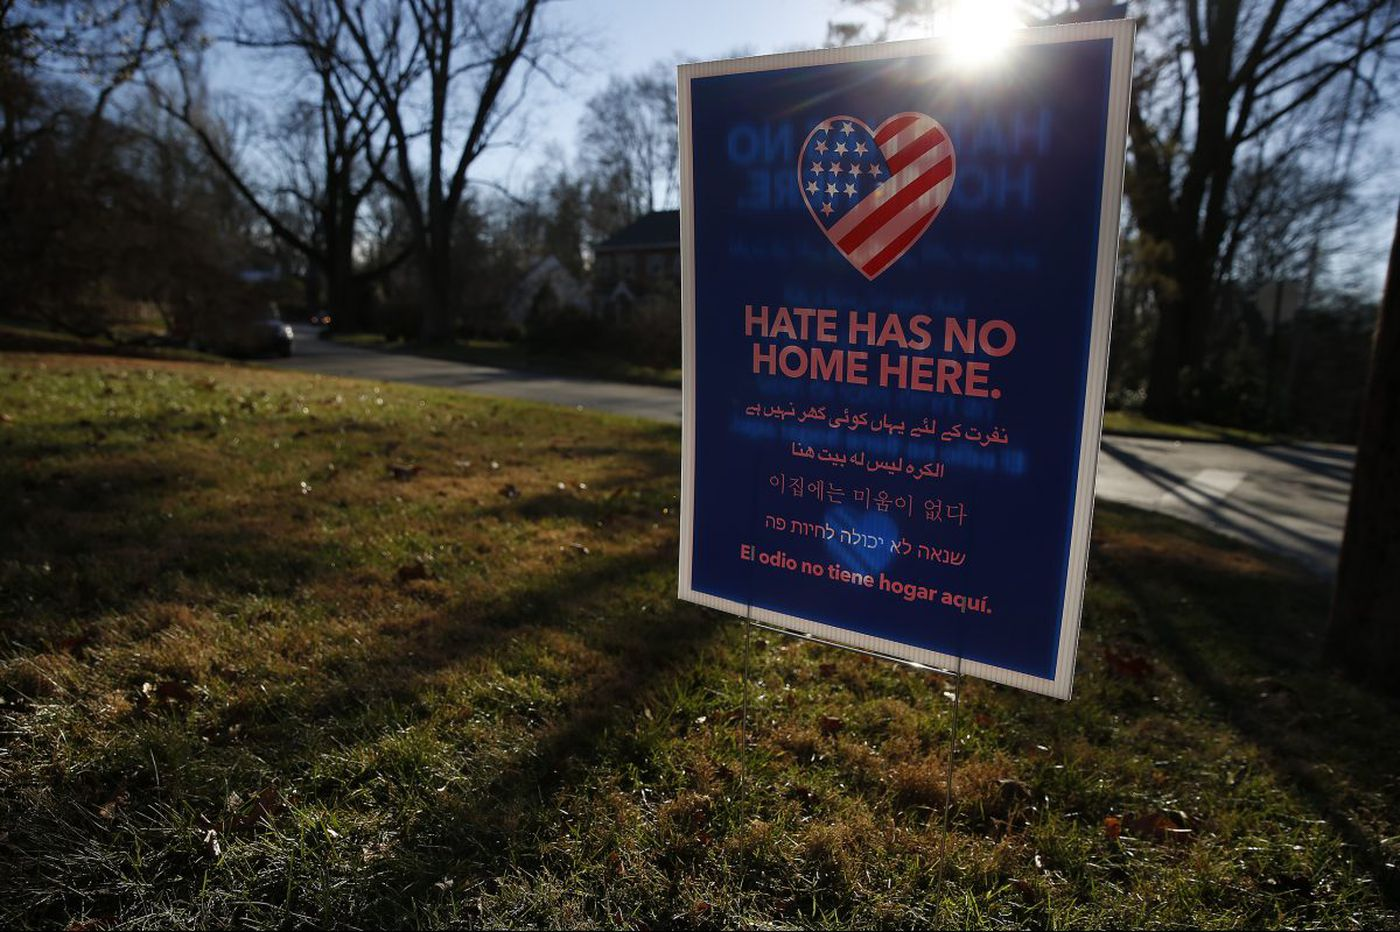 In Lower Merion, Democrats and Republicans try something new: Listening to each other